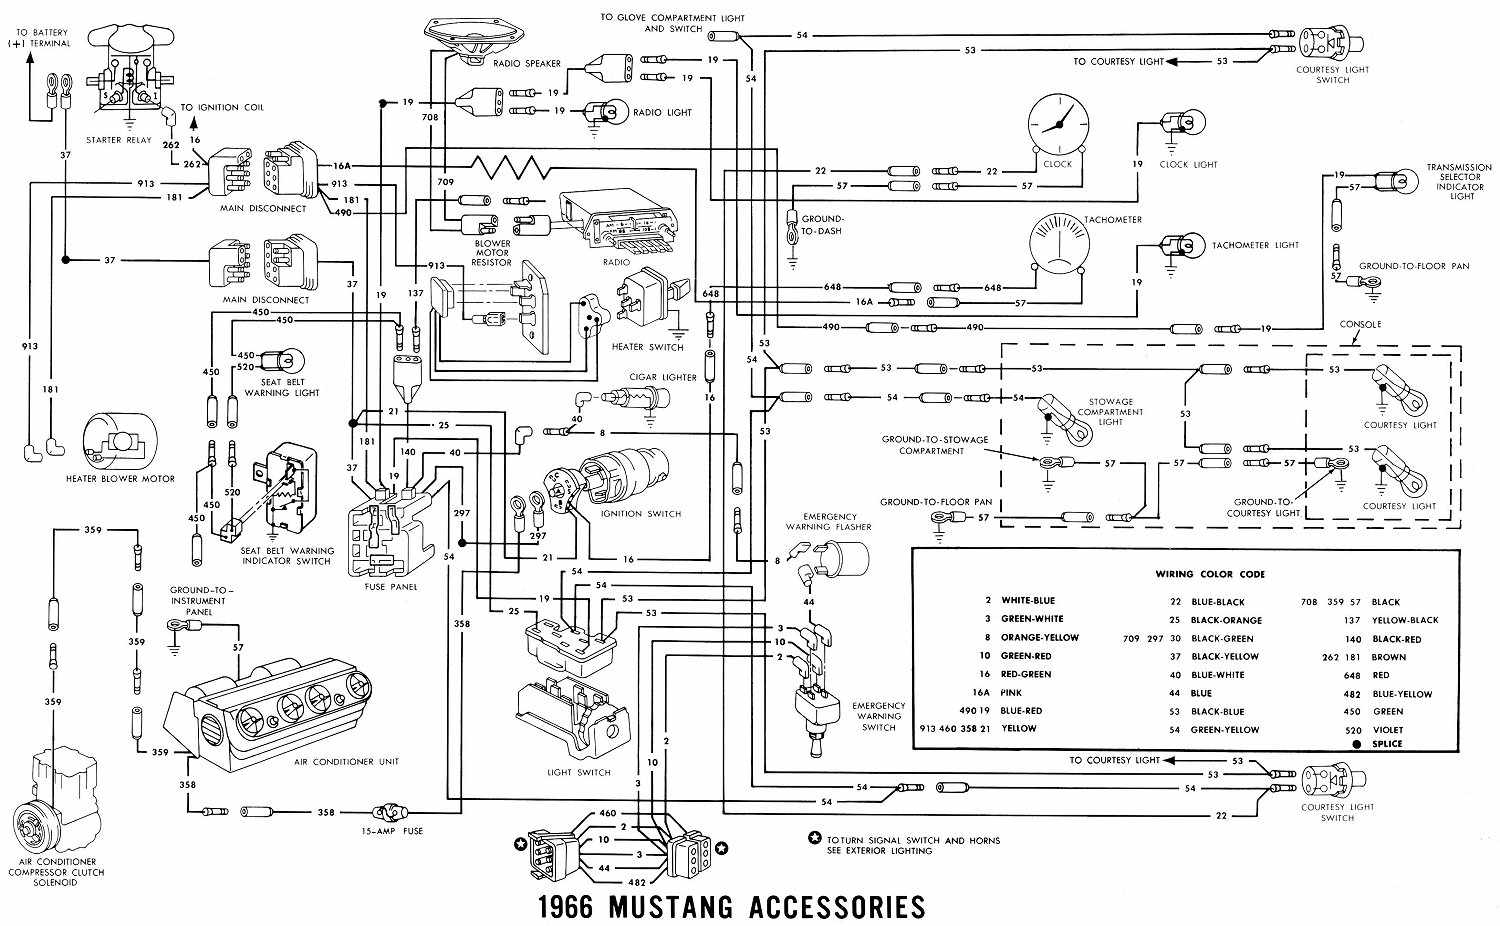 1966 mustang electrical wiring diagram wire center u2022 rh ayseesra co